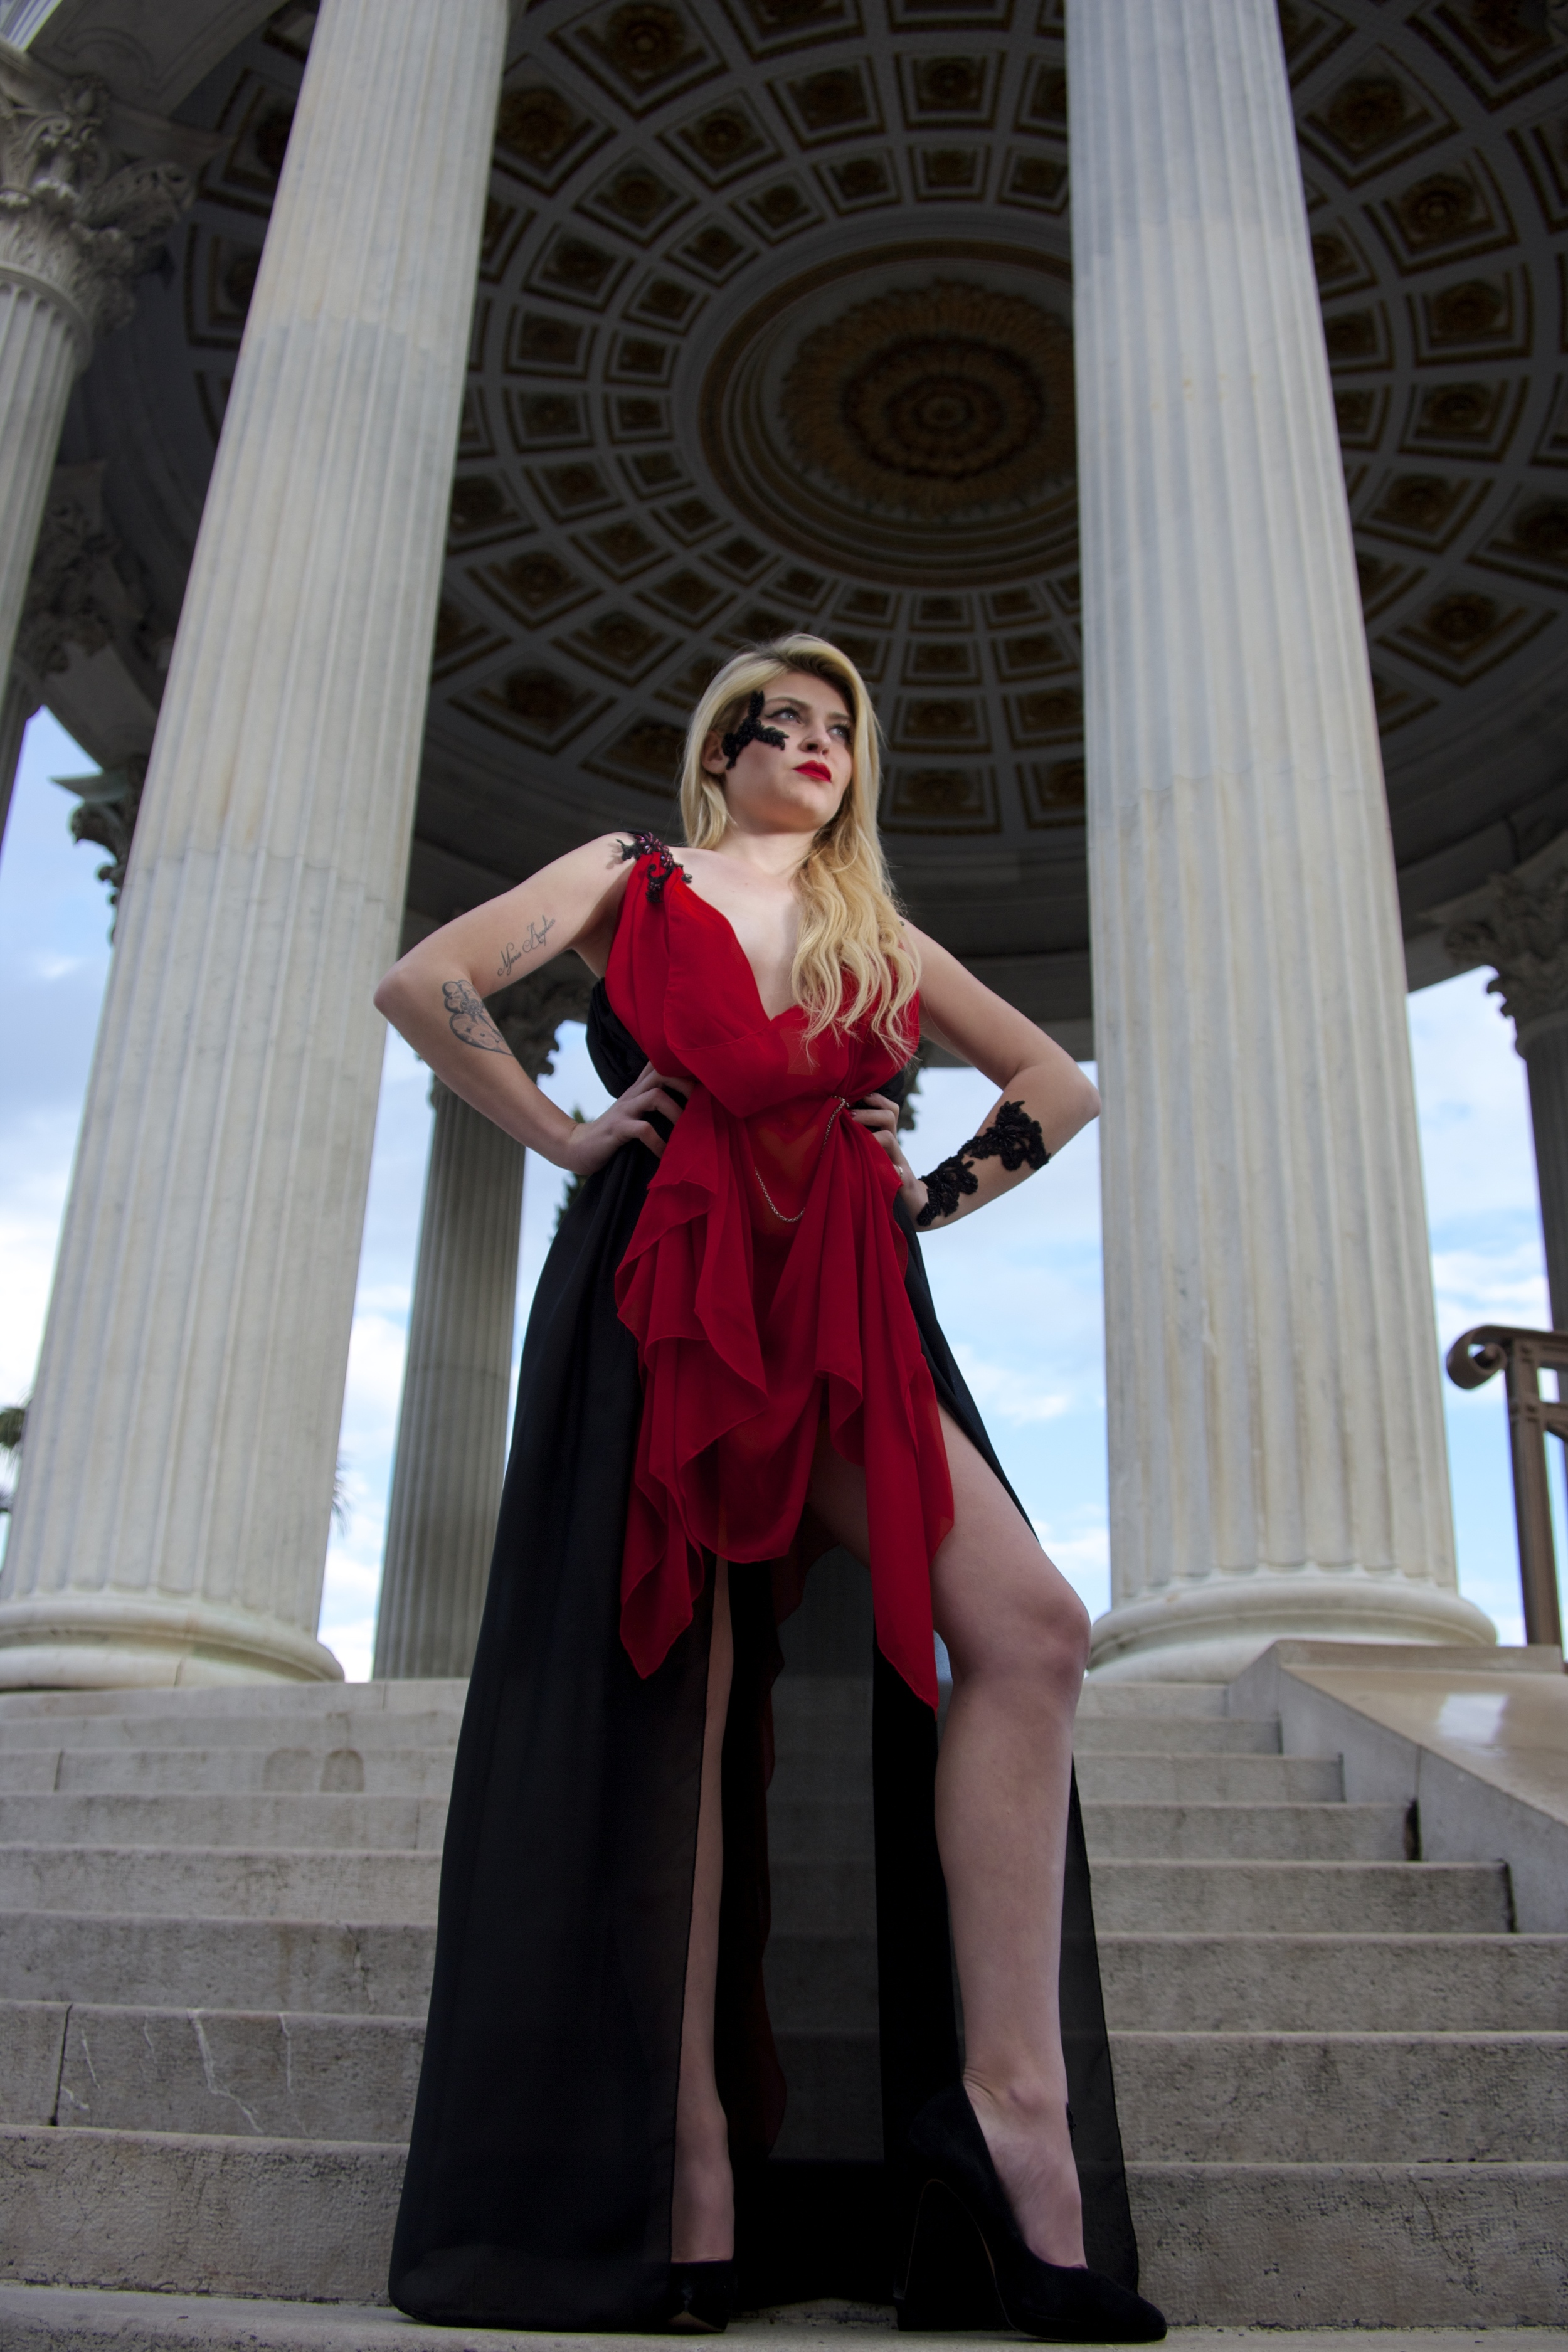 Blond Godess standing in the arches of a roman temple Haute couture